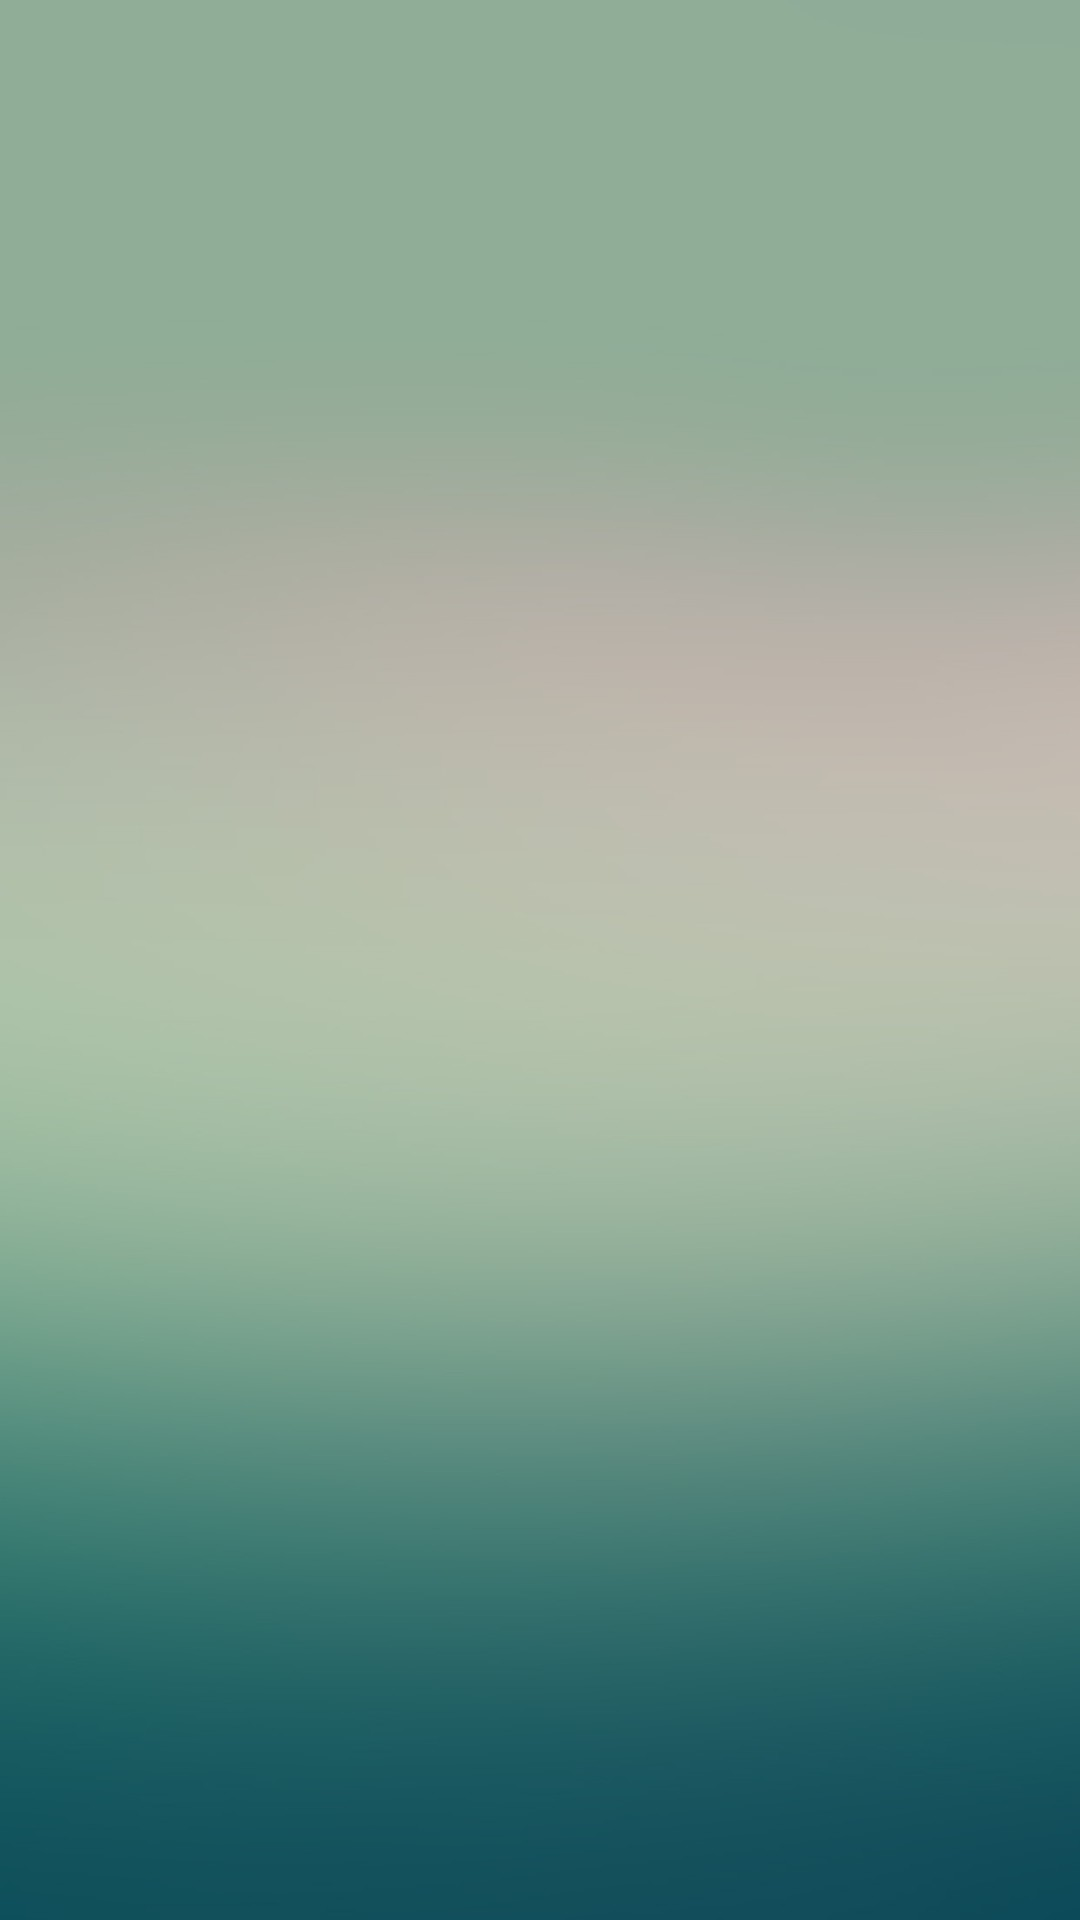 Teal Iphone Wallpaper 80 Images